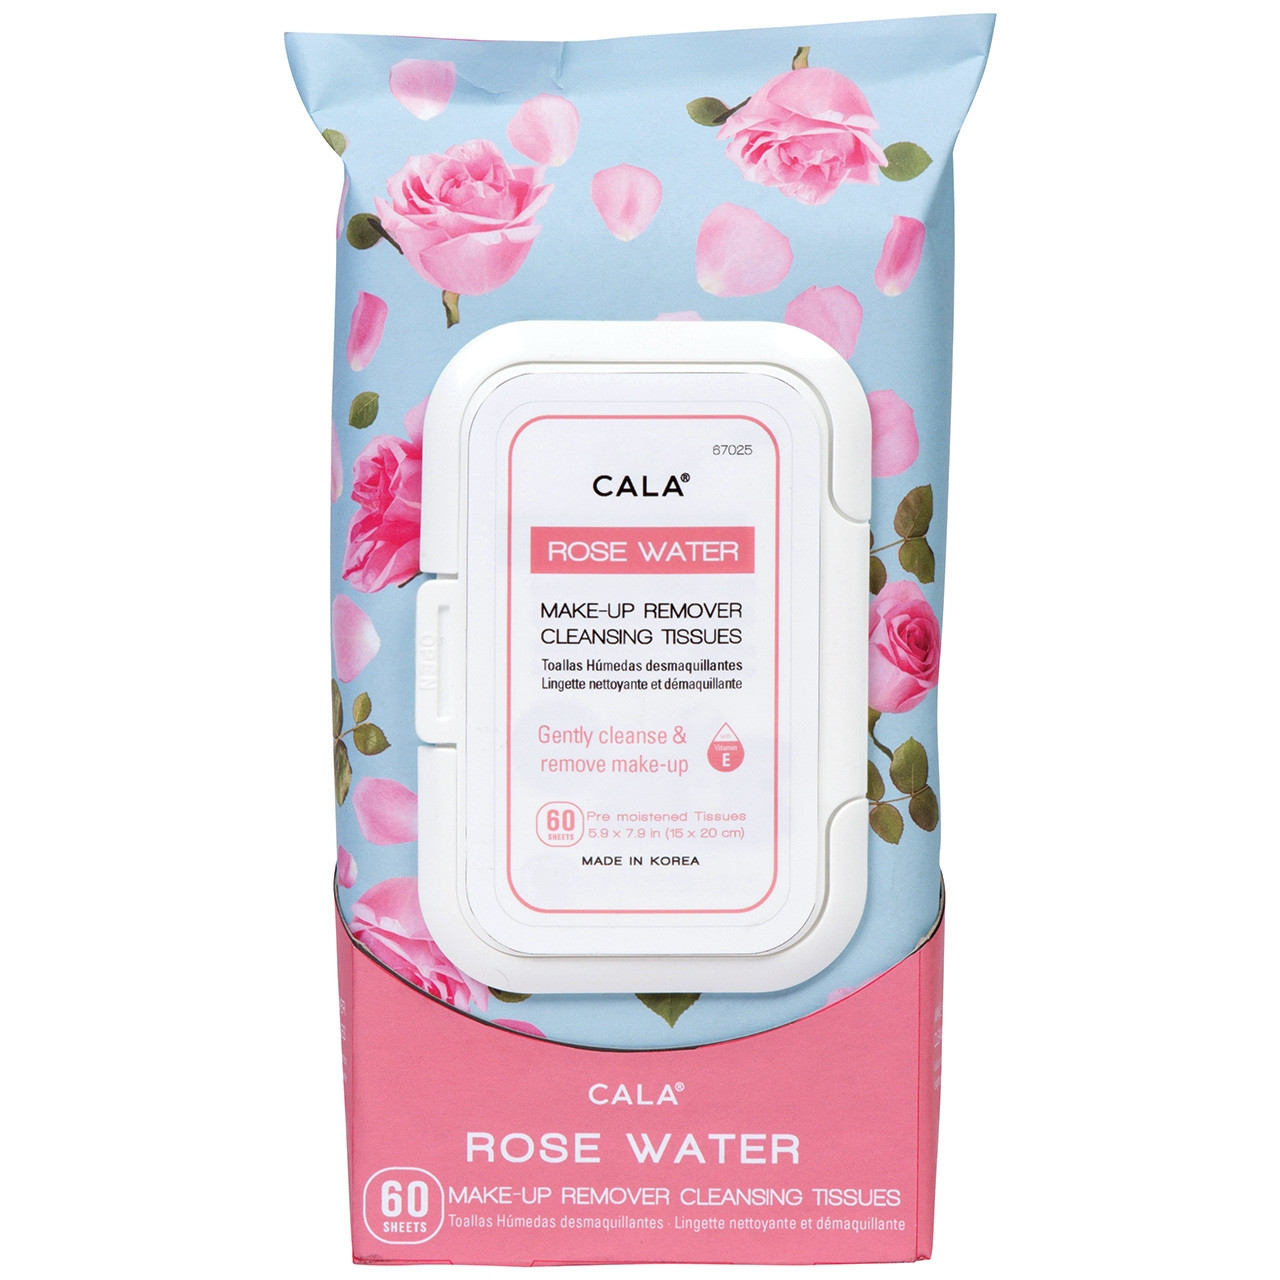 CALA ROSE WATER MAKE-UP REMOVER TISSUES-67025